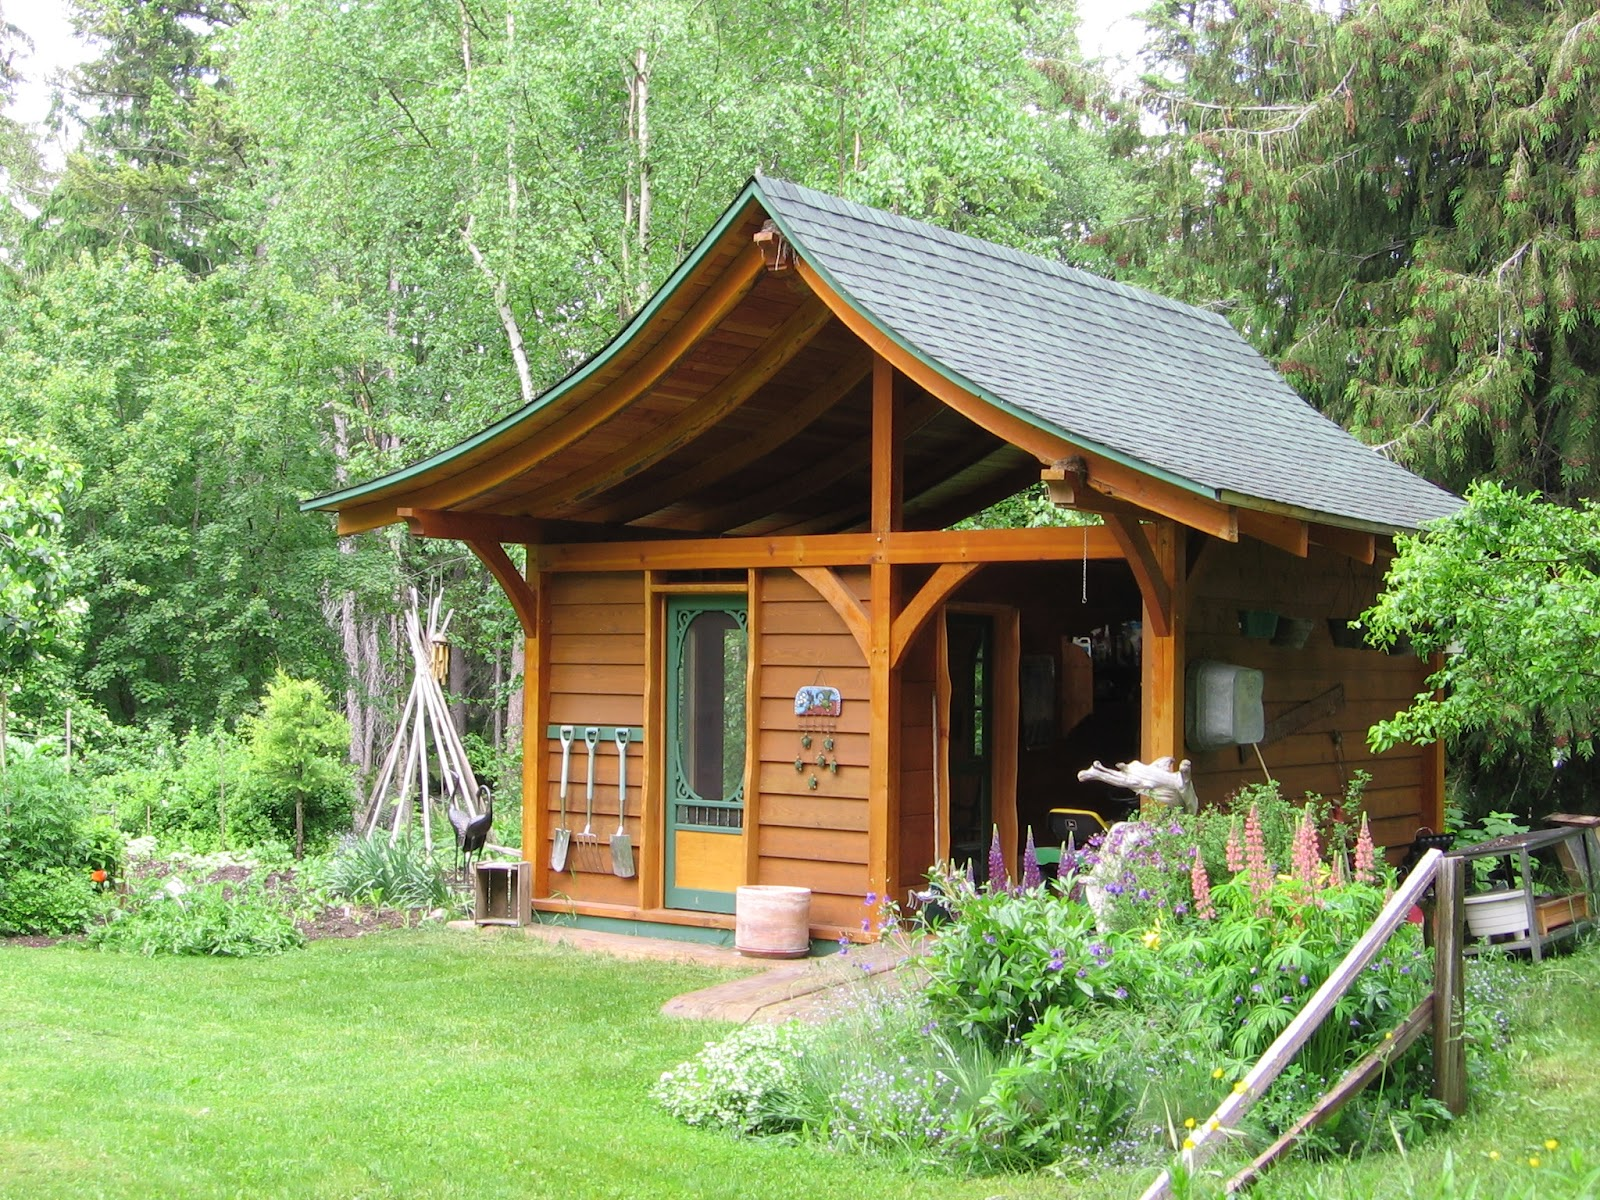 Fairytale backyards 30 magical garden sheds for Garden shed large